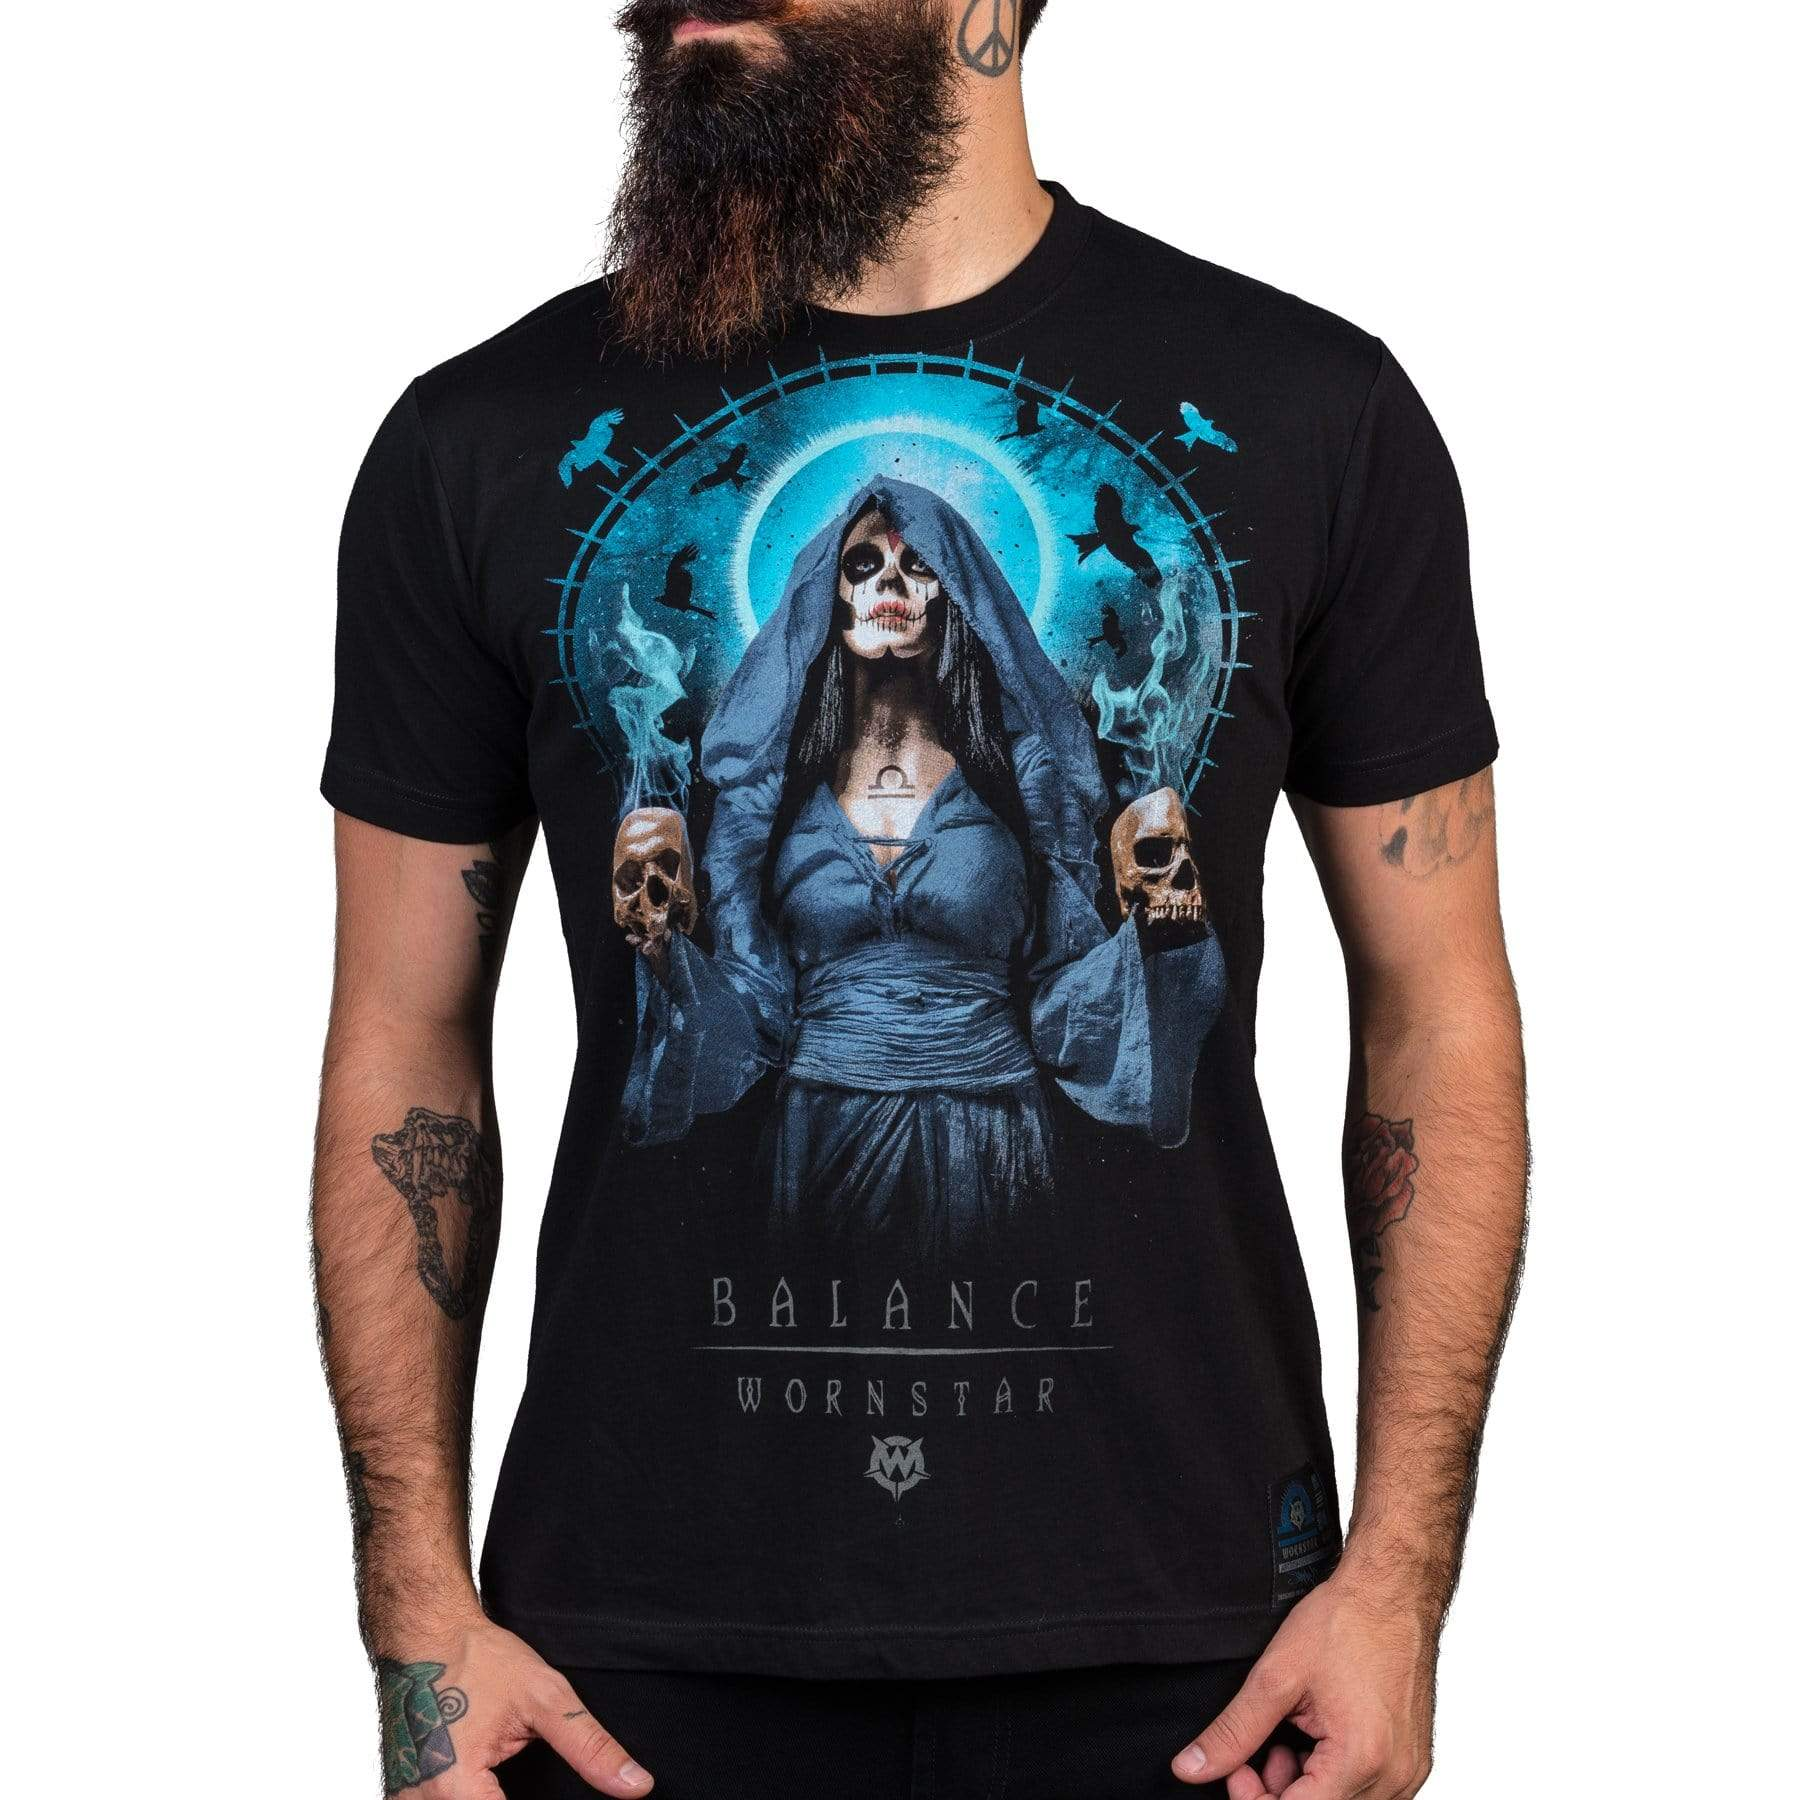 Wornstar Clothing Balance tee with printed catrina girl sugar skull graphic.